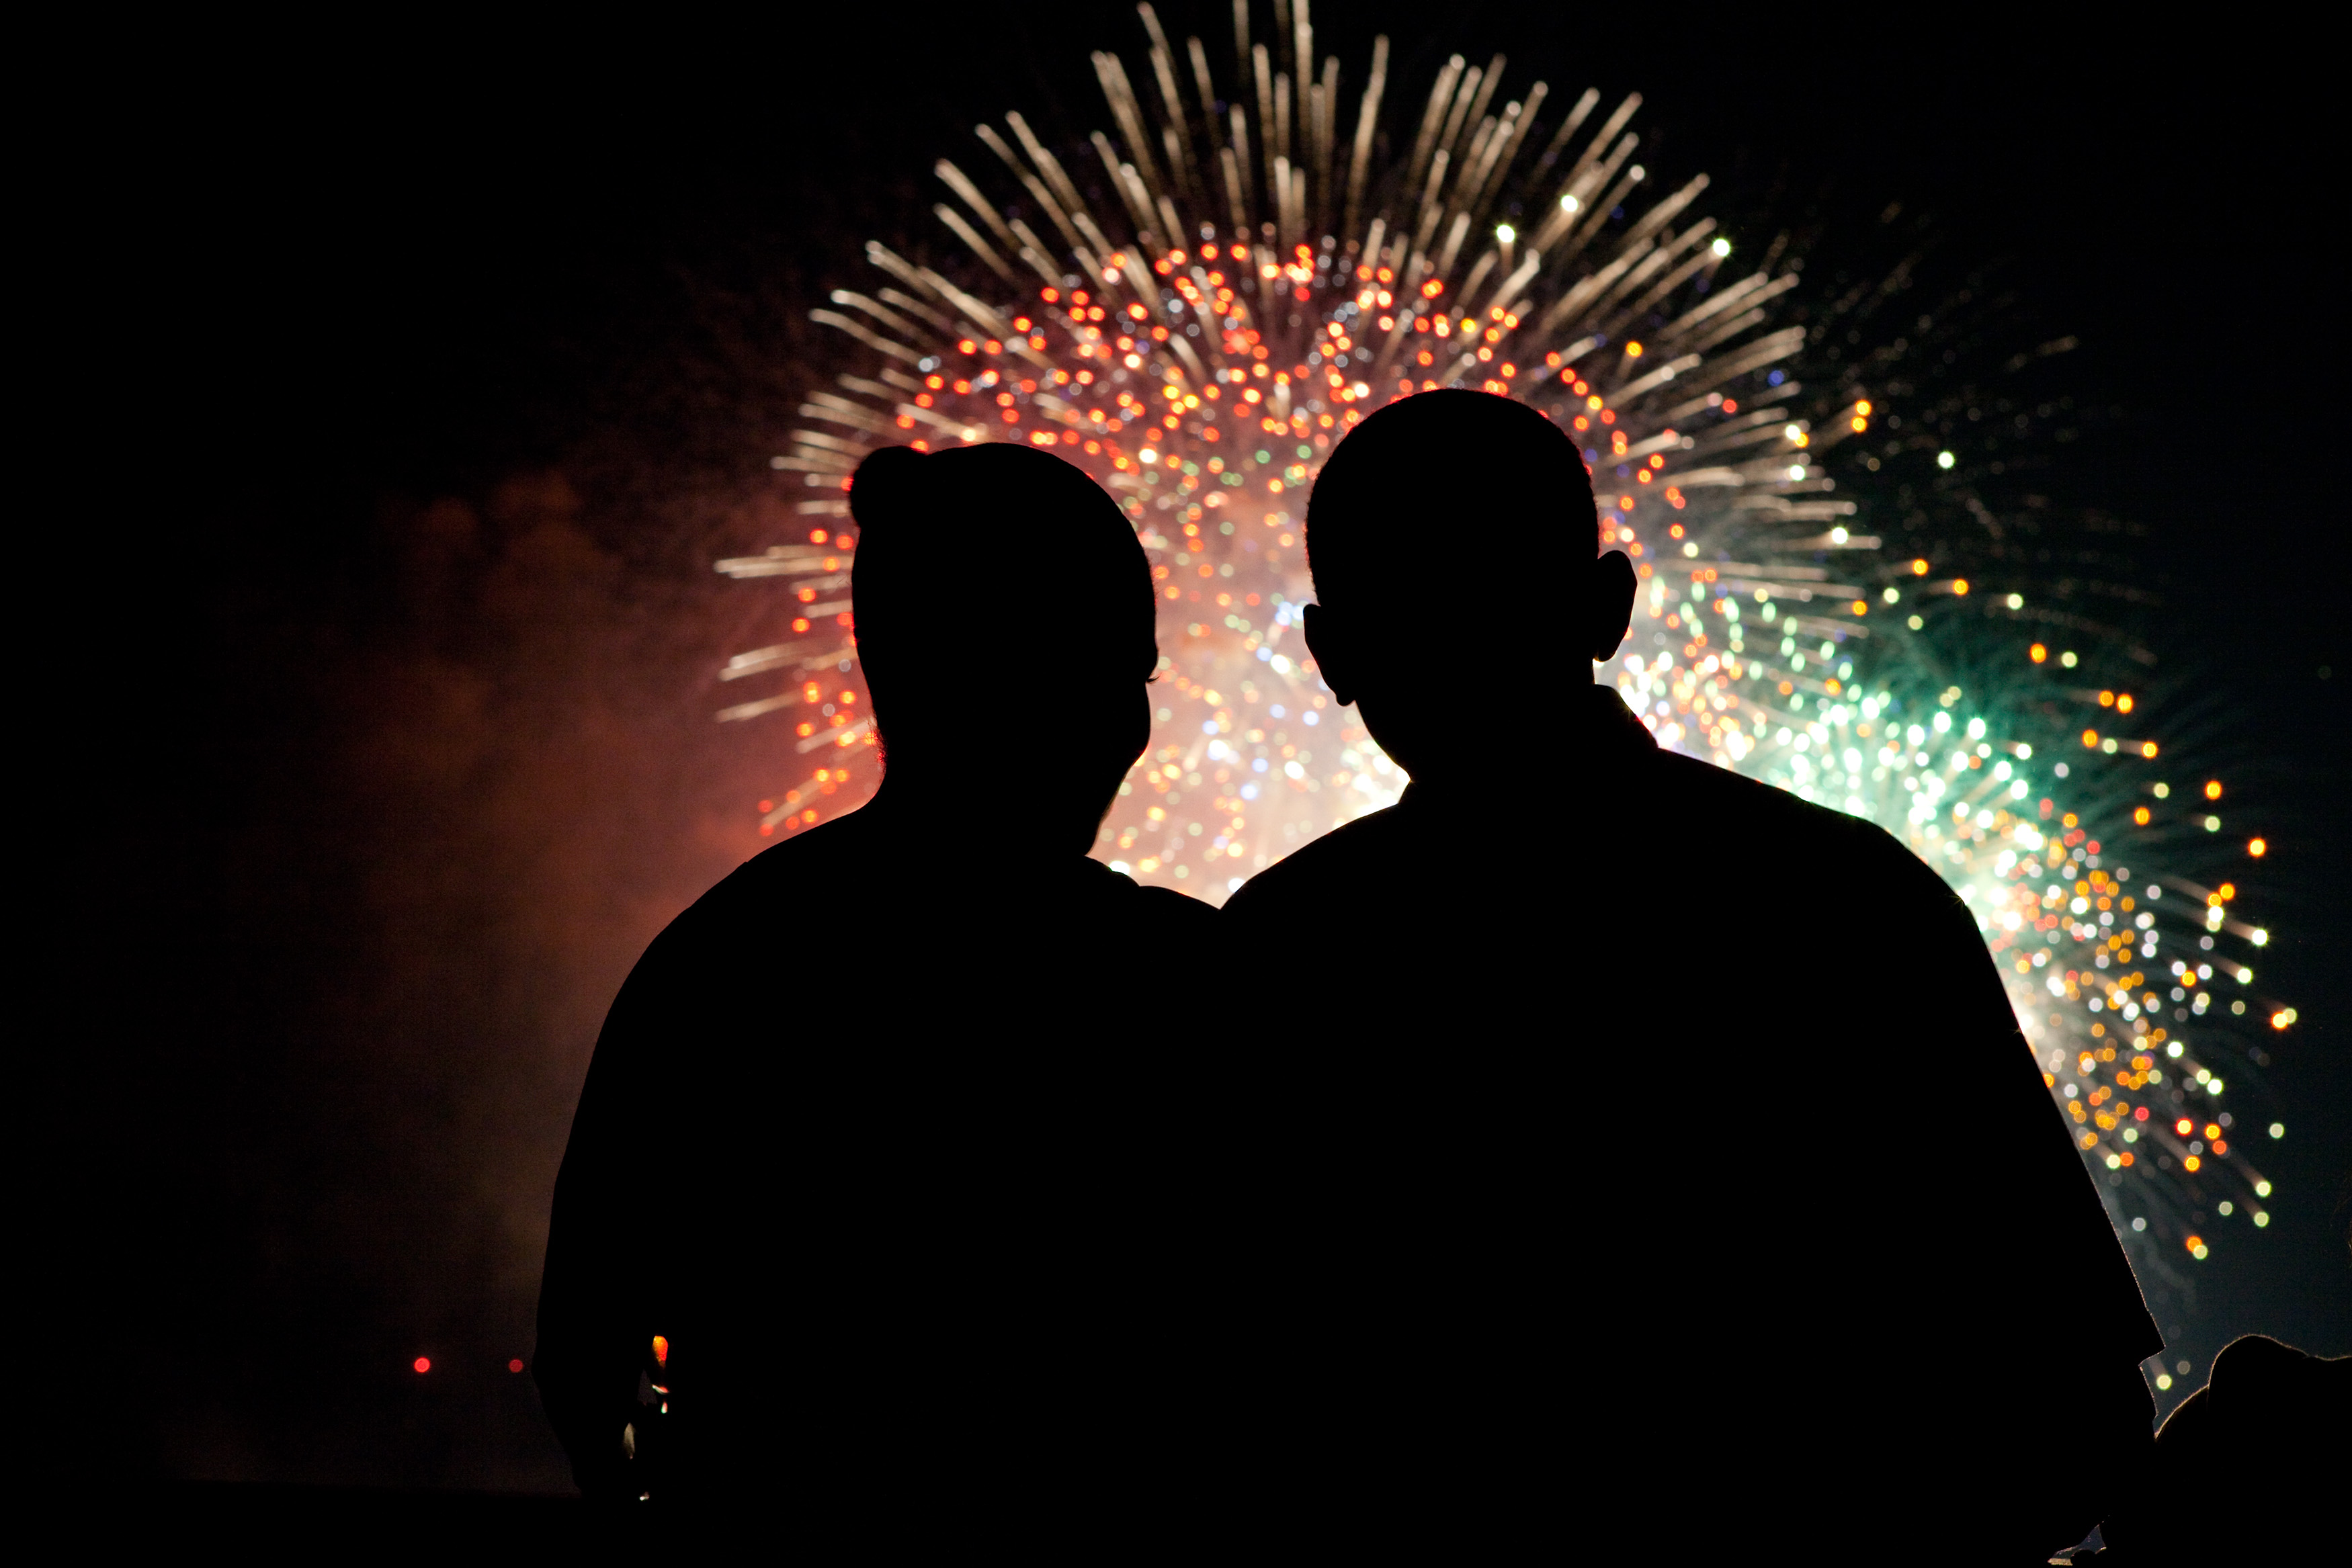 President Barack Obama and First Lady Michelle Obama watch the fireworks over the National Mall from White House on July 4, 2009. (Official White House photo by Pete Souza)  This official White House photograph is being made available for publication by news organizations and/or for personal use printing by the subject(s) of the photograph. The photograph may not be manipulated in any way or used in materials, advertisements, products, or promotions that in any way suggest approval or endorsement of the President, the First Family, or the White House.